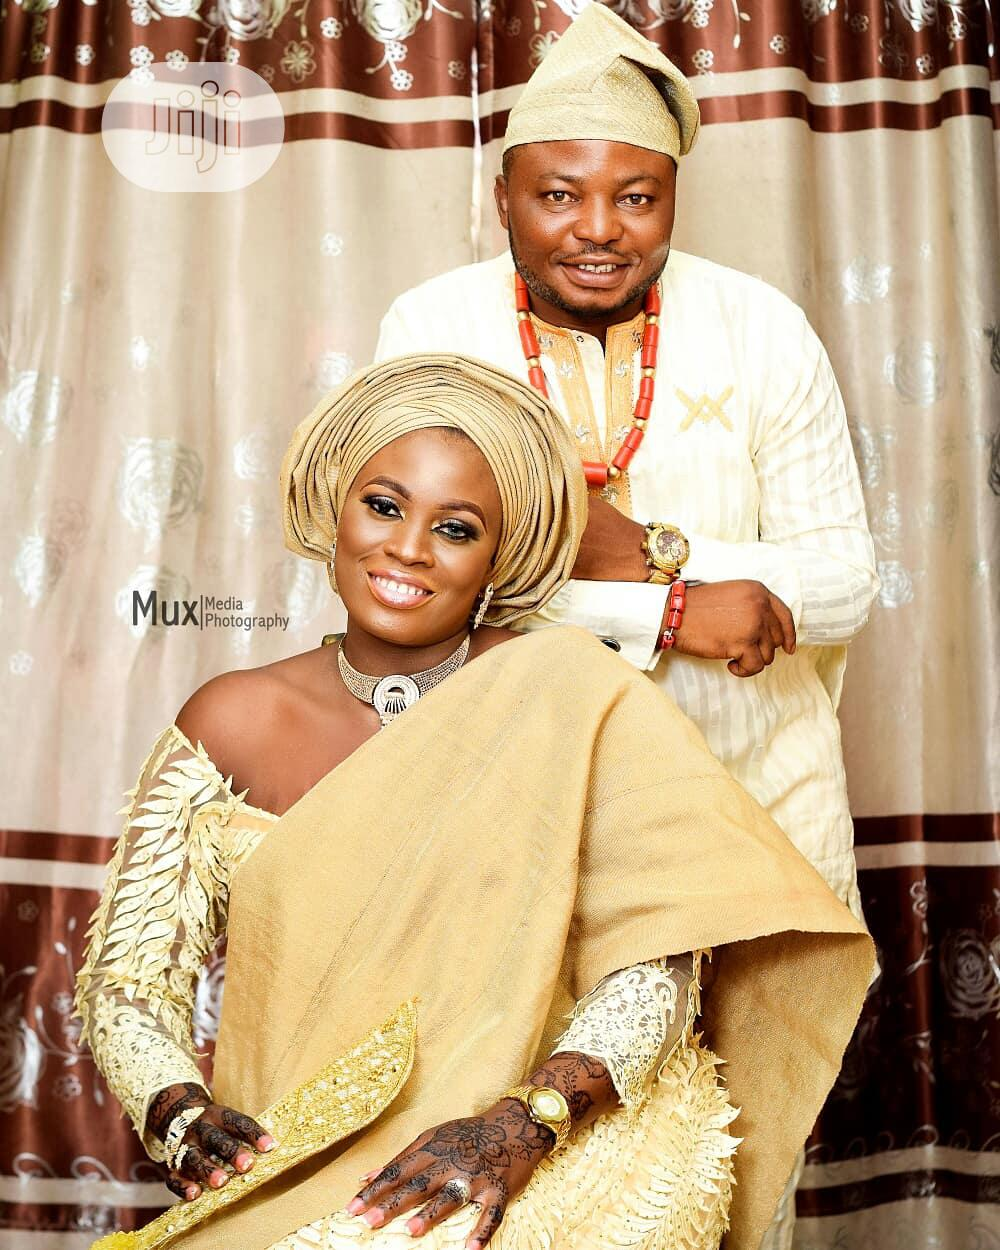 Mux_media Photography | Photography & Video Services for sale in Ajah, Lagos State, Nigeria